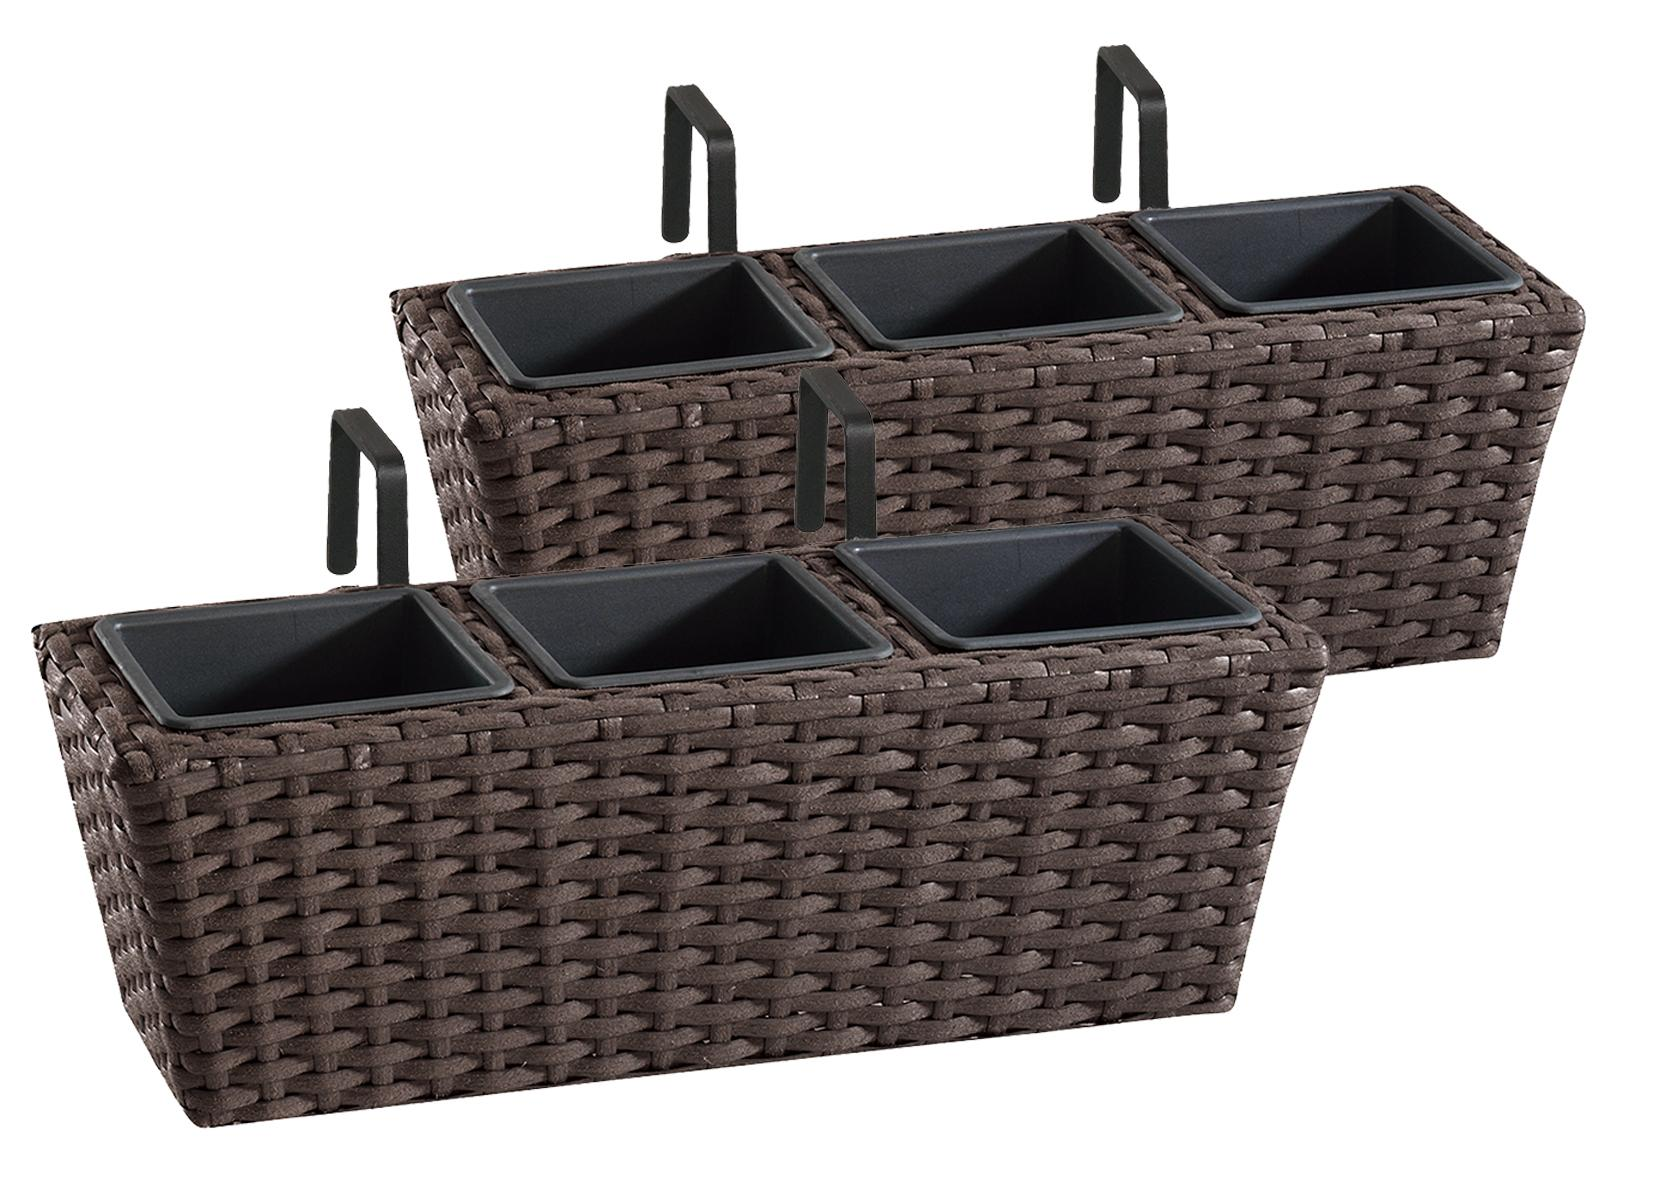 gartenfreude polyrattan balkonkasten blumenkasten 2 st ck inkl aufh ngung 47 x 17 x 15 cm mit. Black Bedroom Furniture Sets. Home Design Ideas